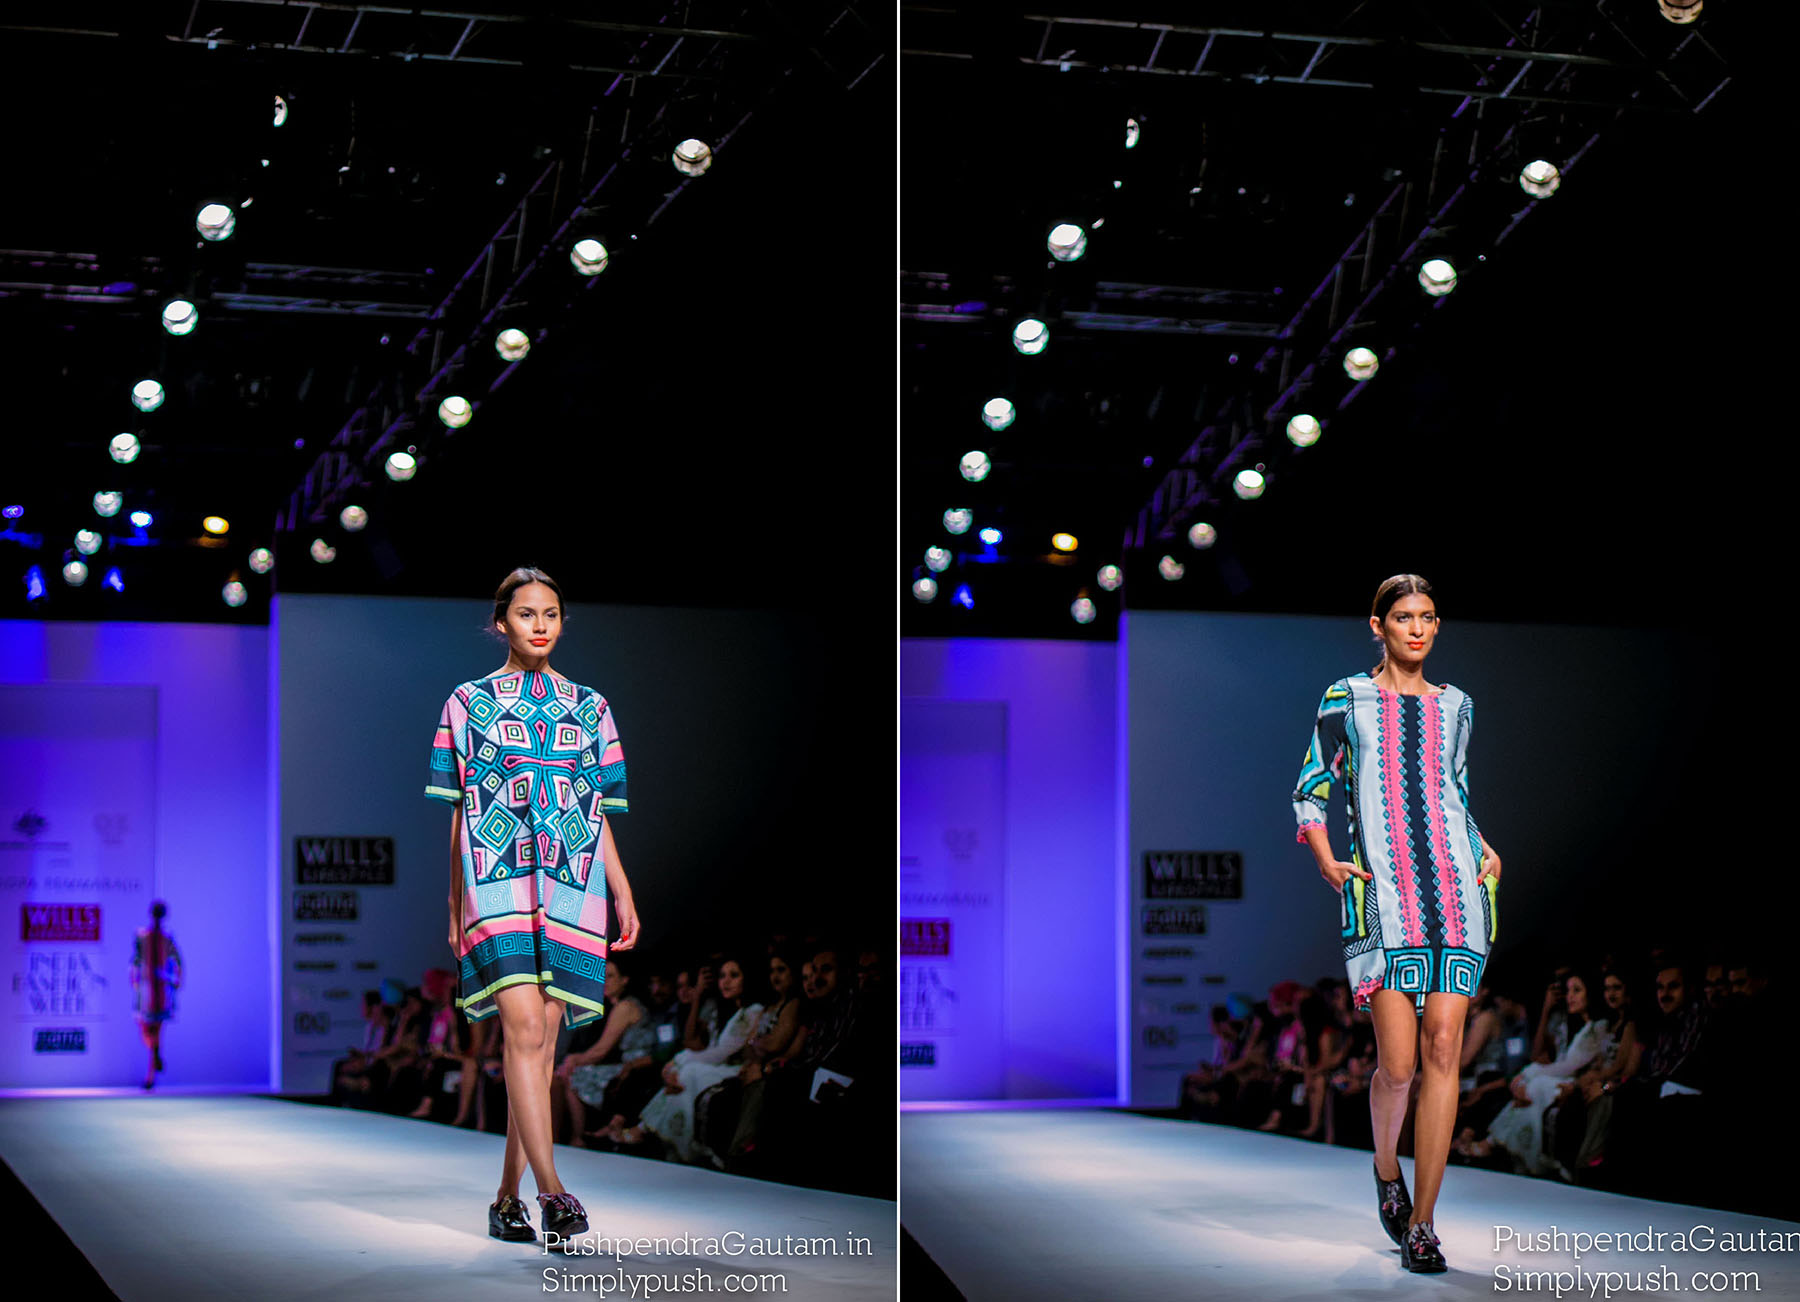 Roopa-Pemmaraju-wills-india-fashion-week-ss15-collection-austaralian-designer-india-best-event-travel-lifestyle-photographer-pushpendra-gautam